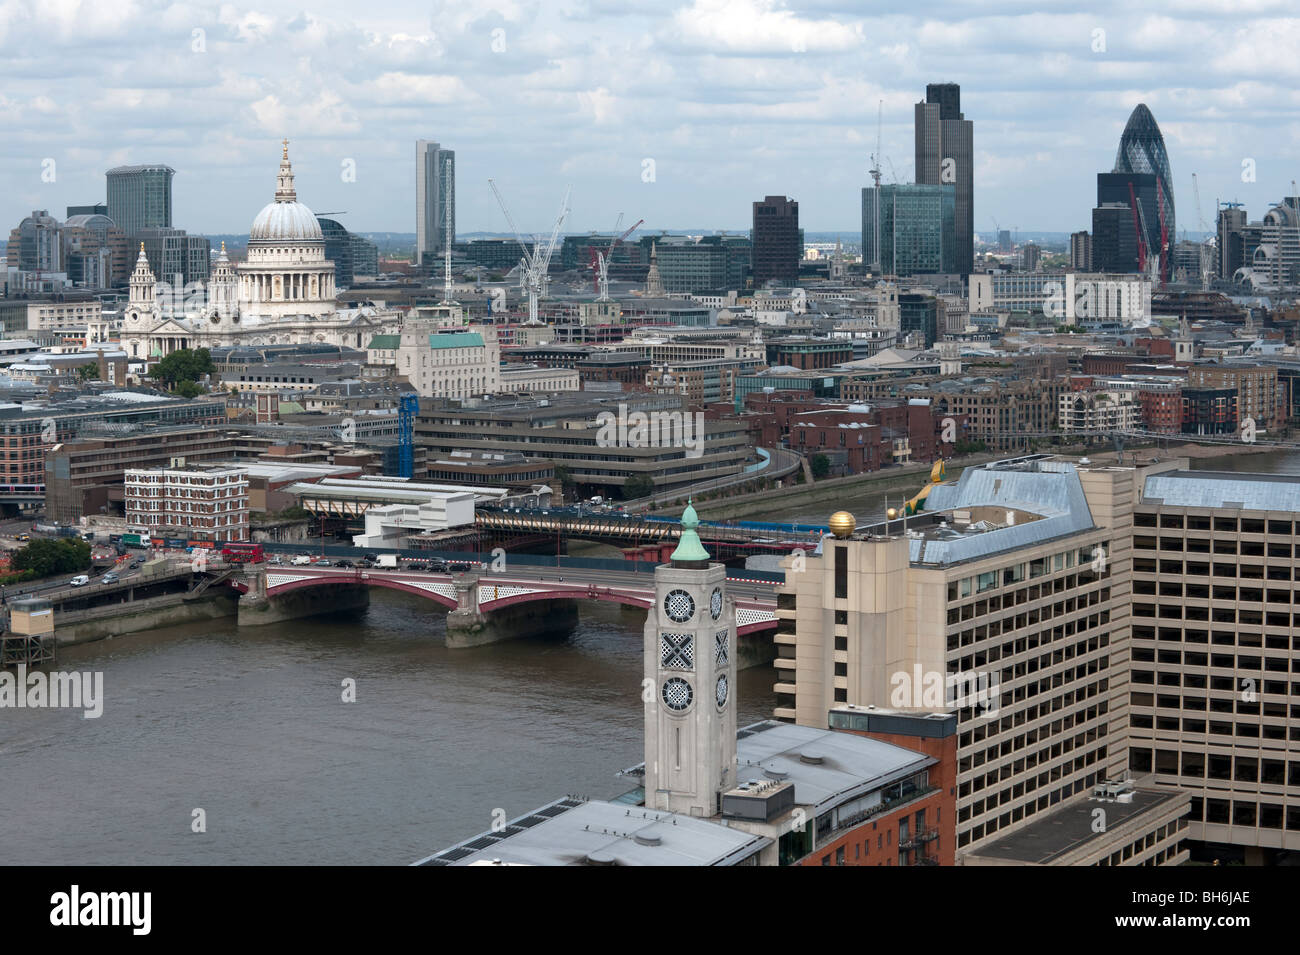 Panoramic view of City of London showing St Paul's Cathedral, Blackfriars Bridge, Swiss Re, Nat West Tower and The Stock Photo